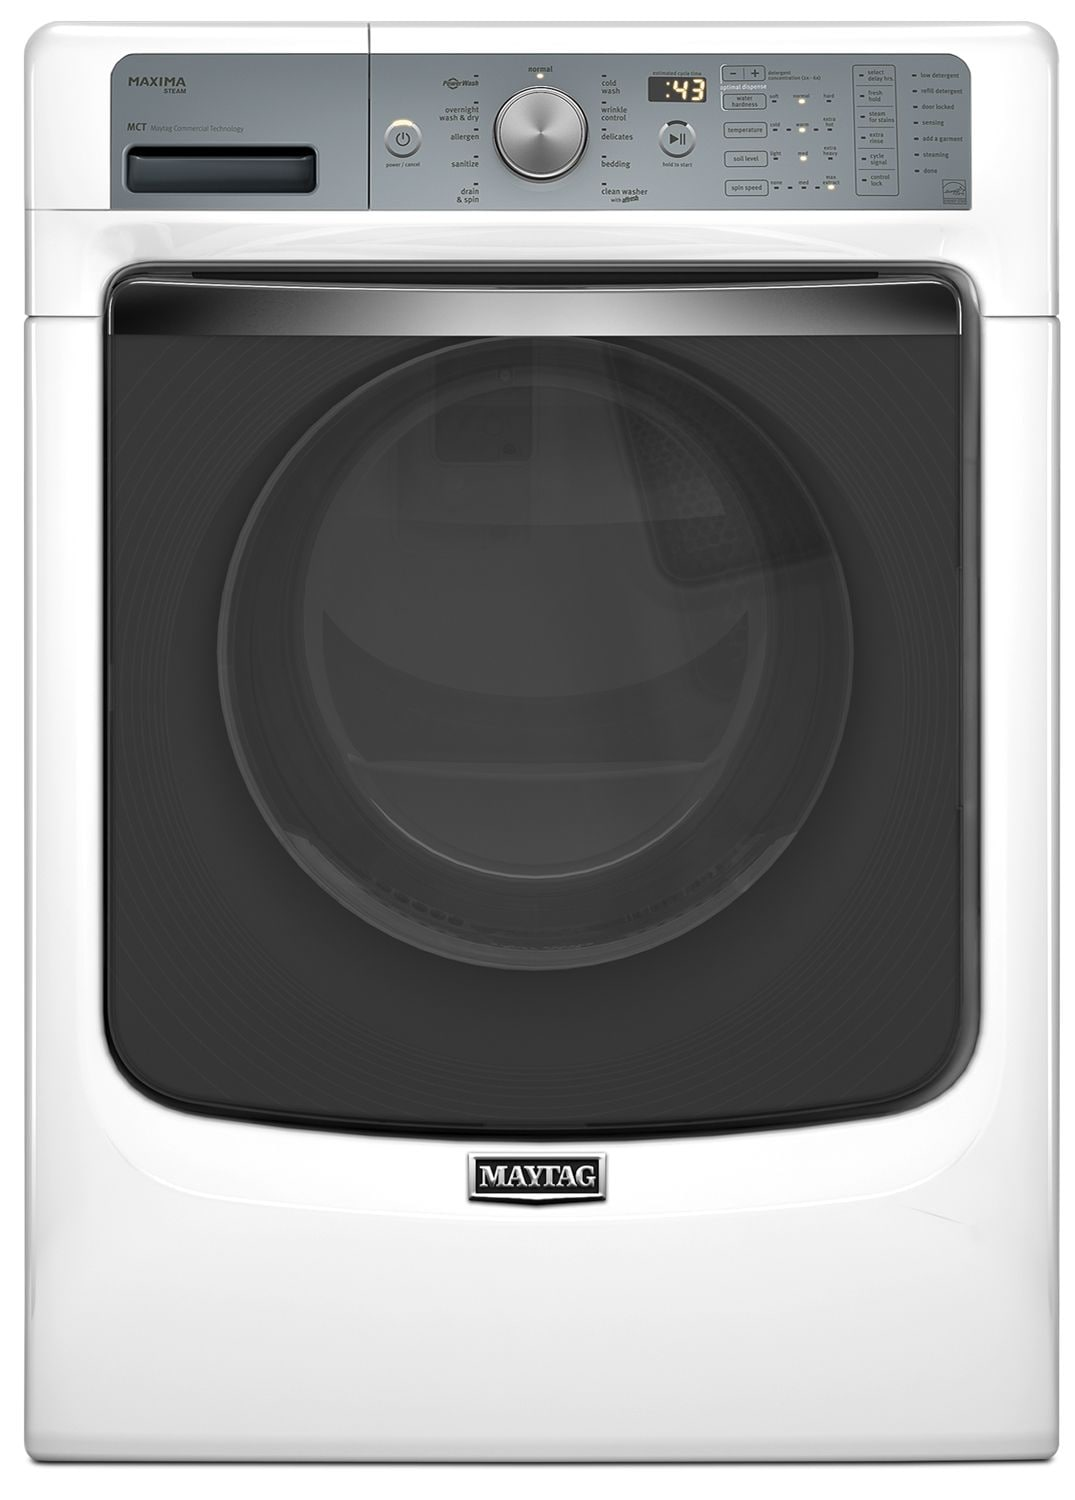 Washers and Dryers - Maytag Maxima® White Front-Load Washer w/ PowerWash® System (5.2 Cu. Ft.) - MHW8100DW